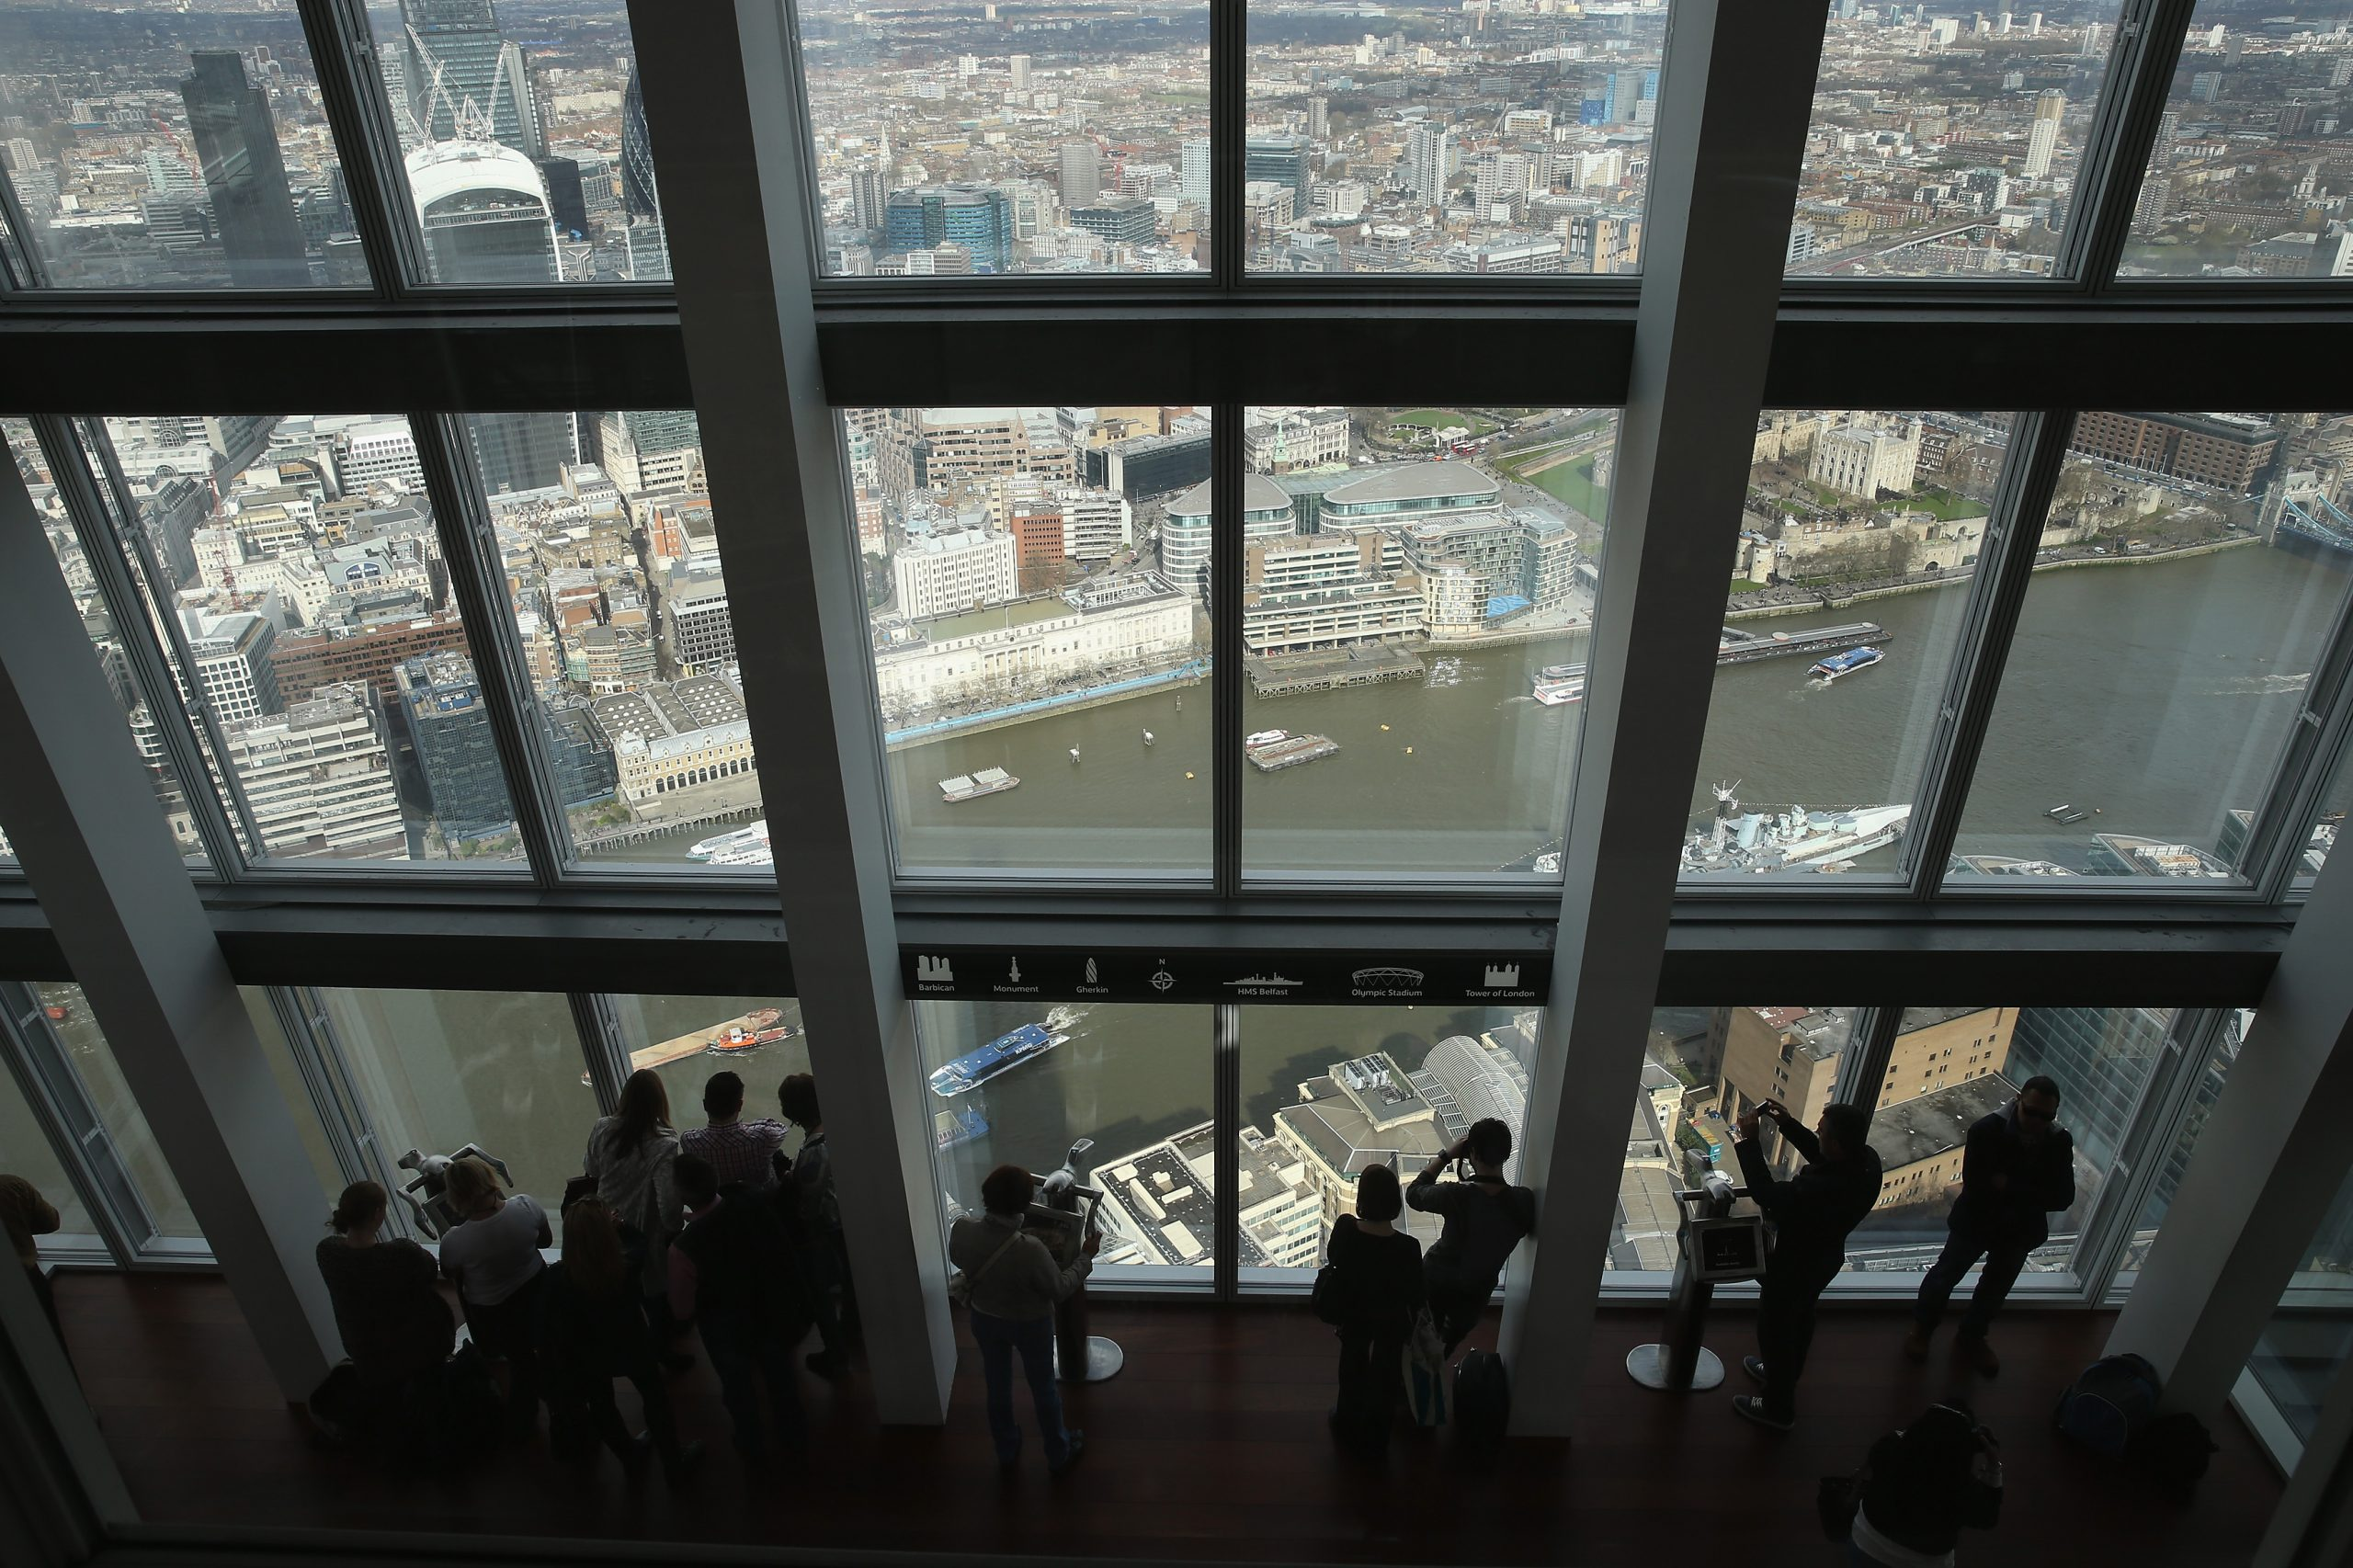 Central London Viewed From The Shard